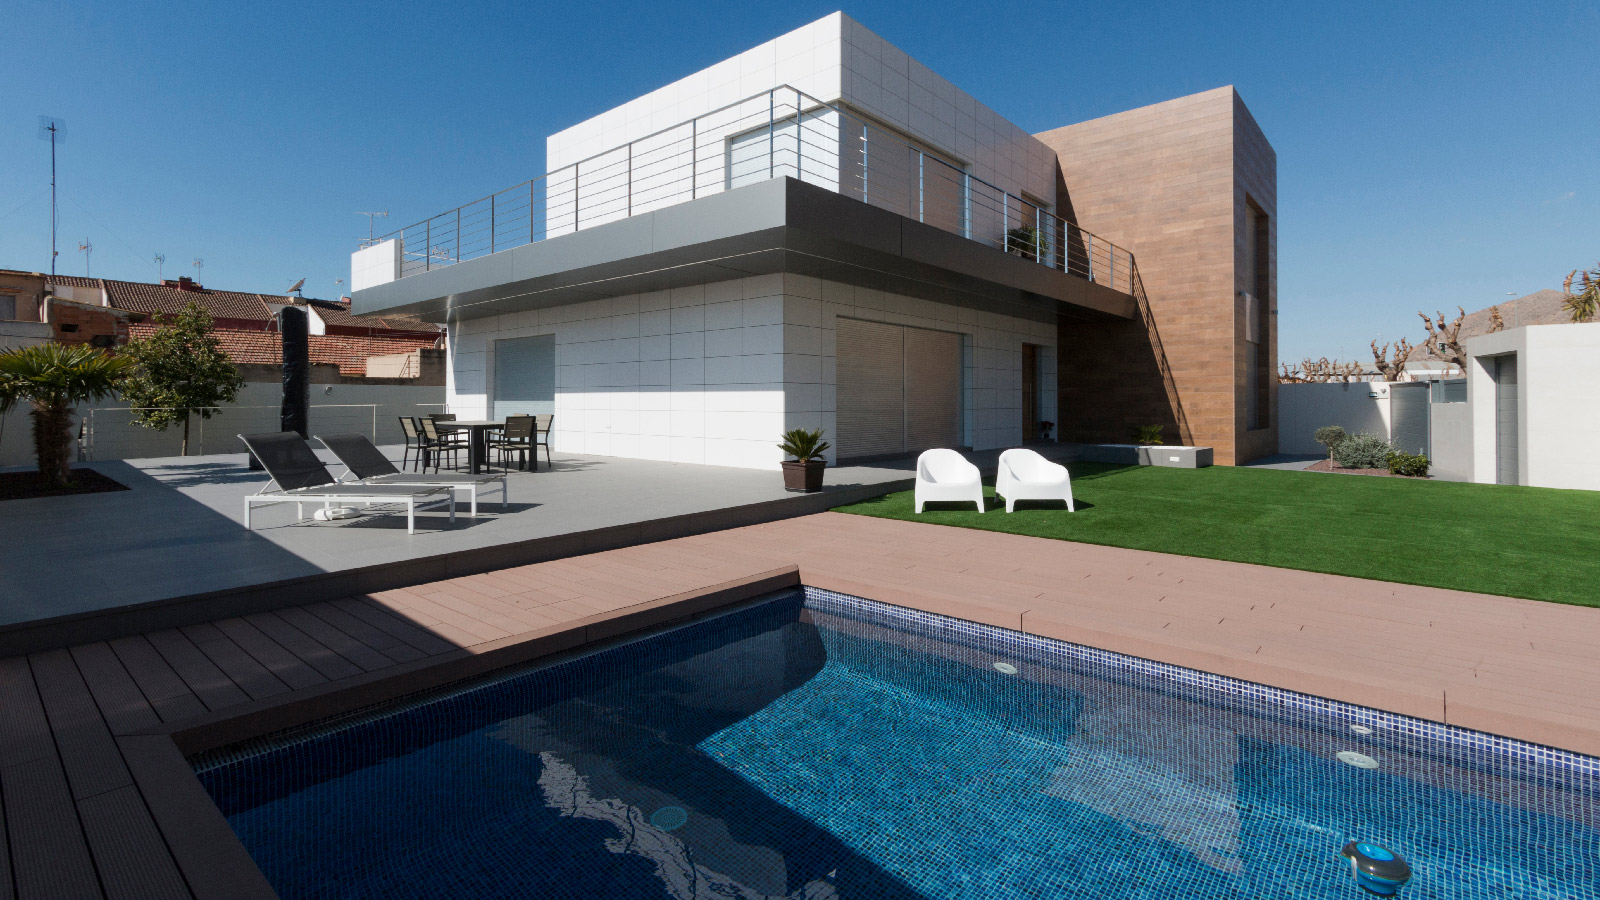 PORCELANOSA  Grupo Projects: a single-family home designed from the inside